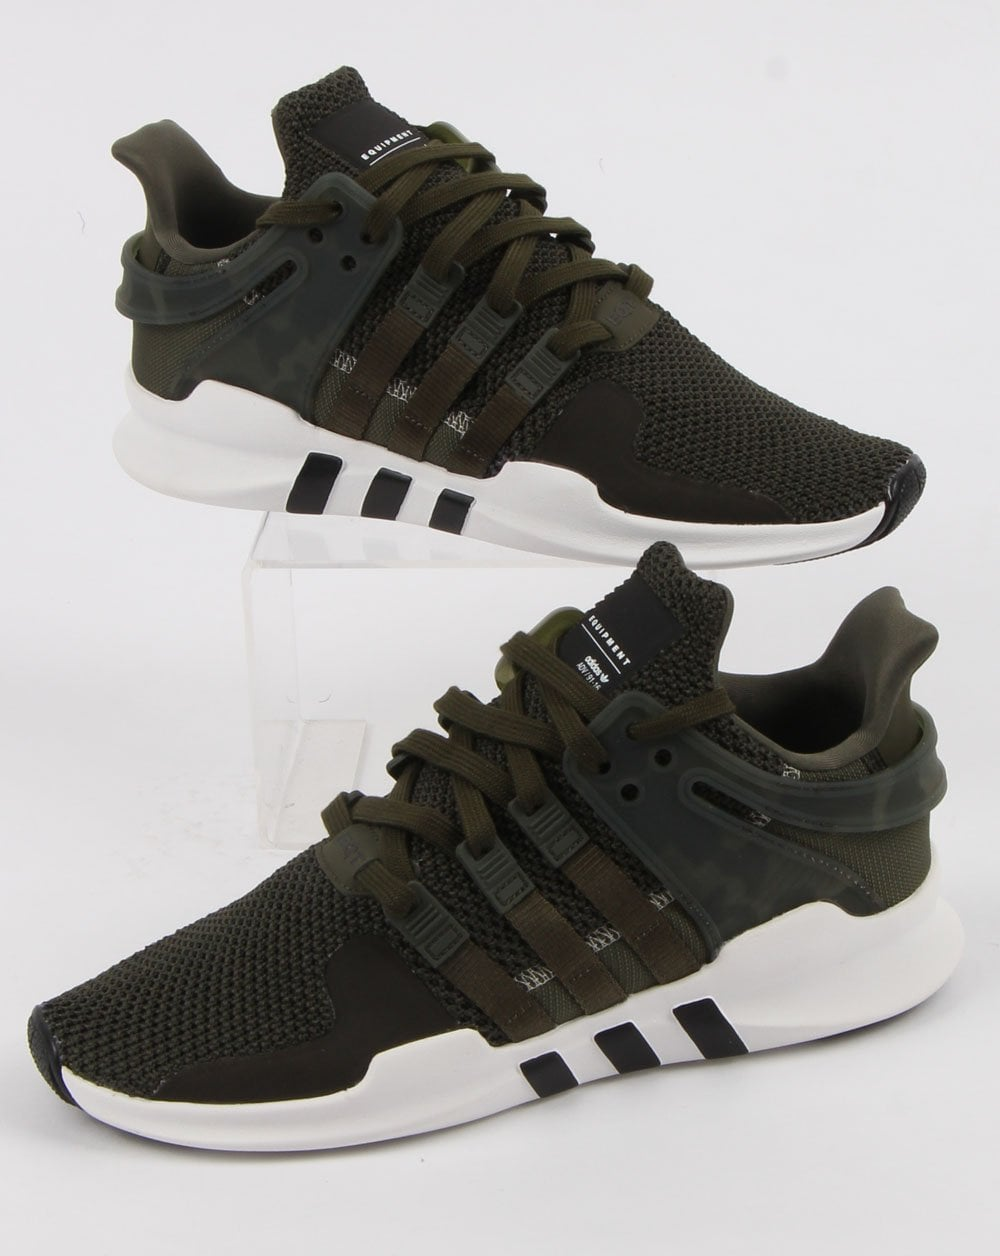 low priced 5de73 7763c Adidas Eqt Support Adv Night Cargo/white/black